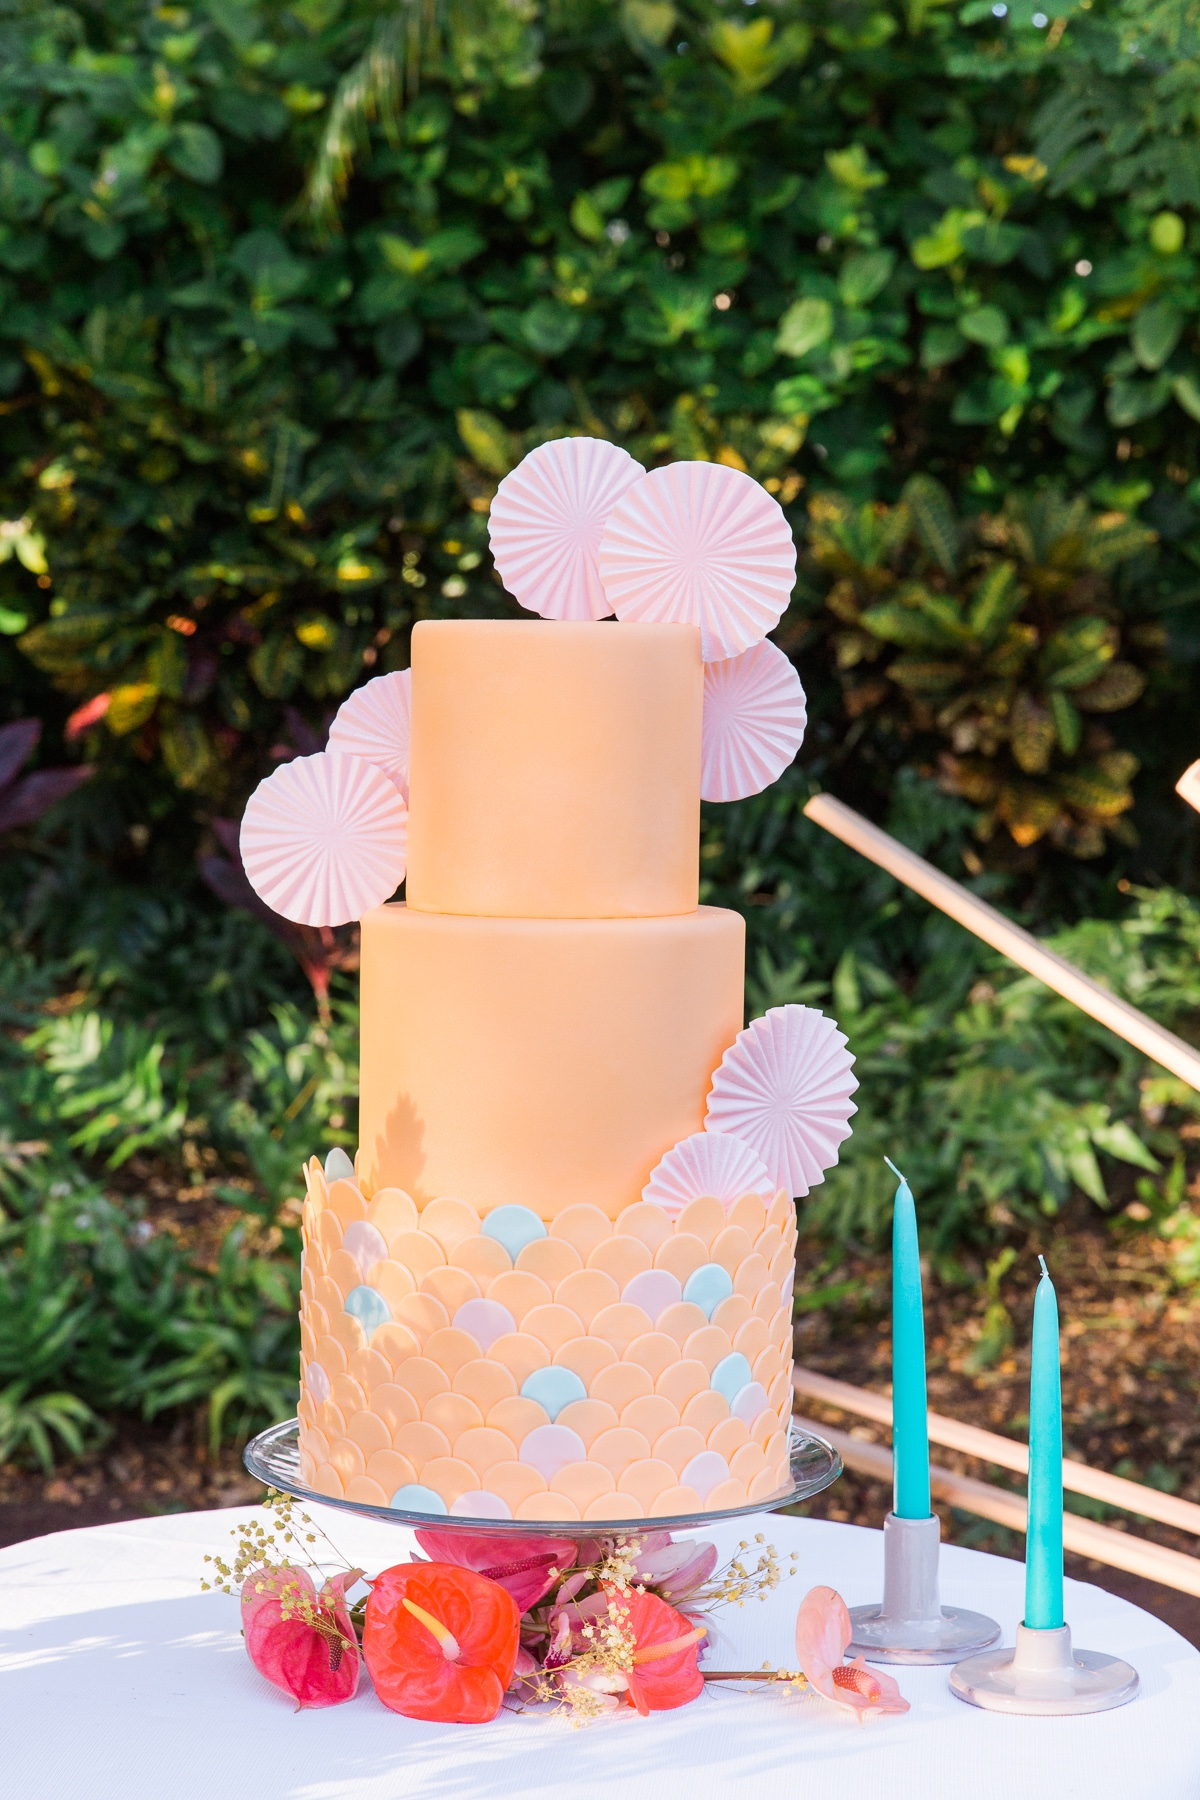 Peach wedding cake with circles designed by Magnolia at Four Seasons Resort, Hualala